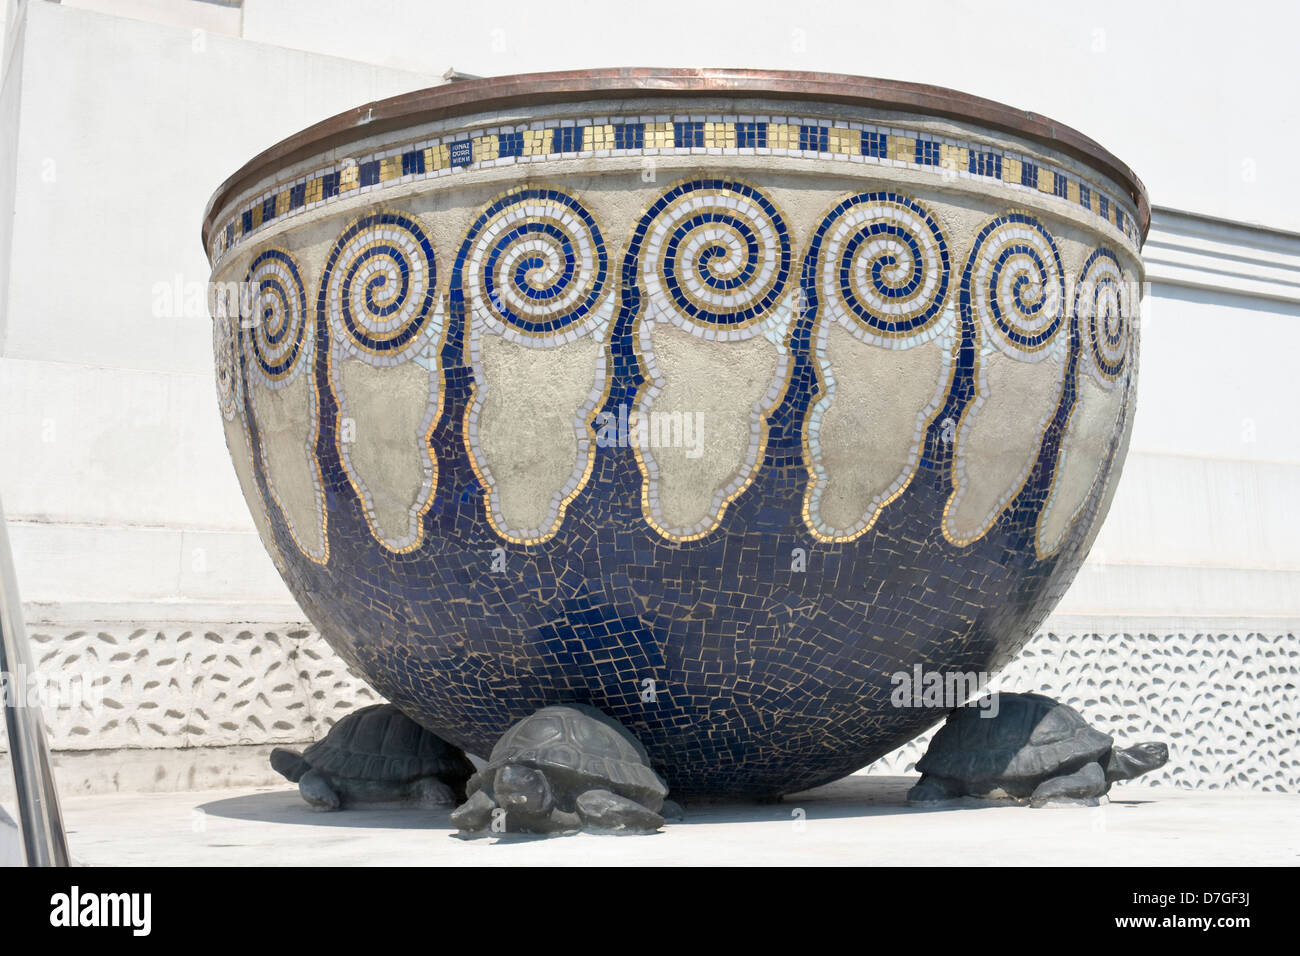 Secession building, decorated vase - Stock Image